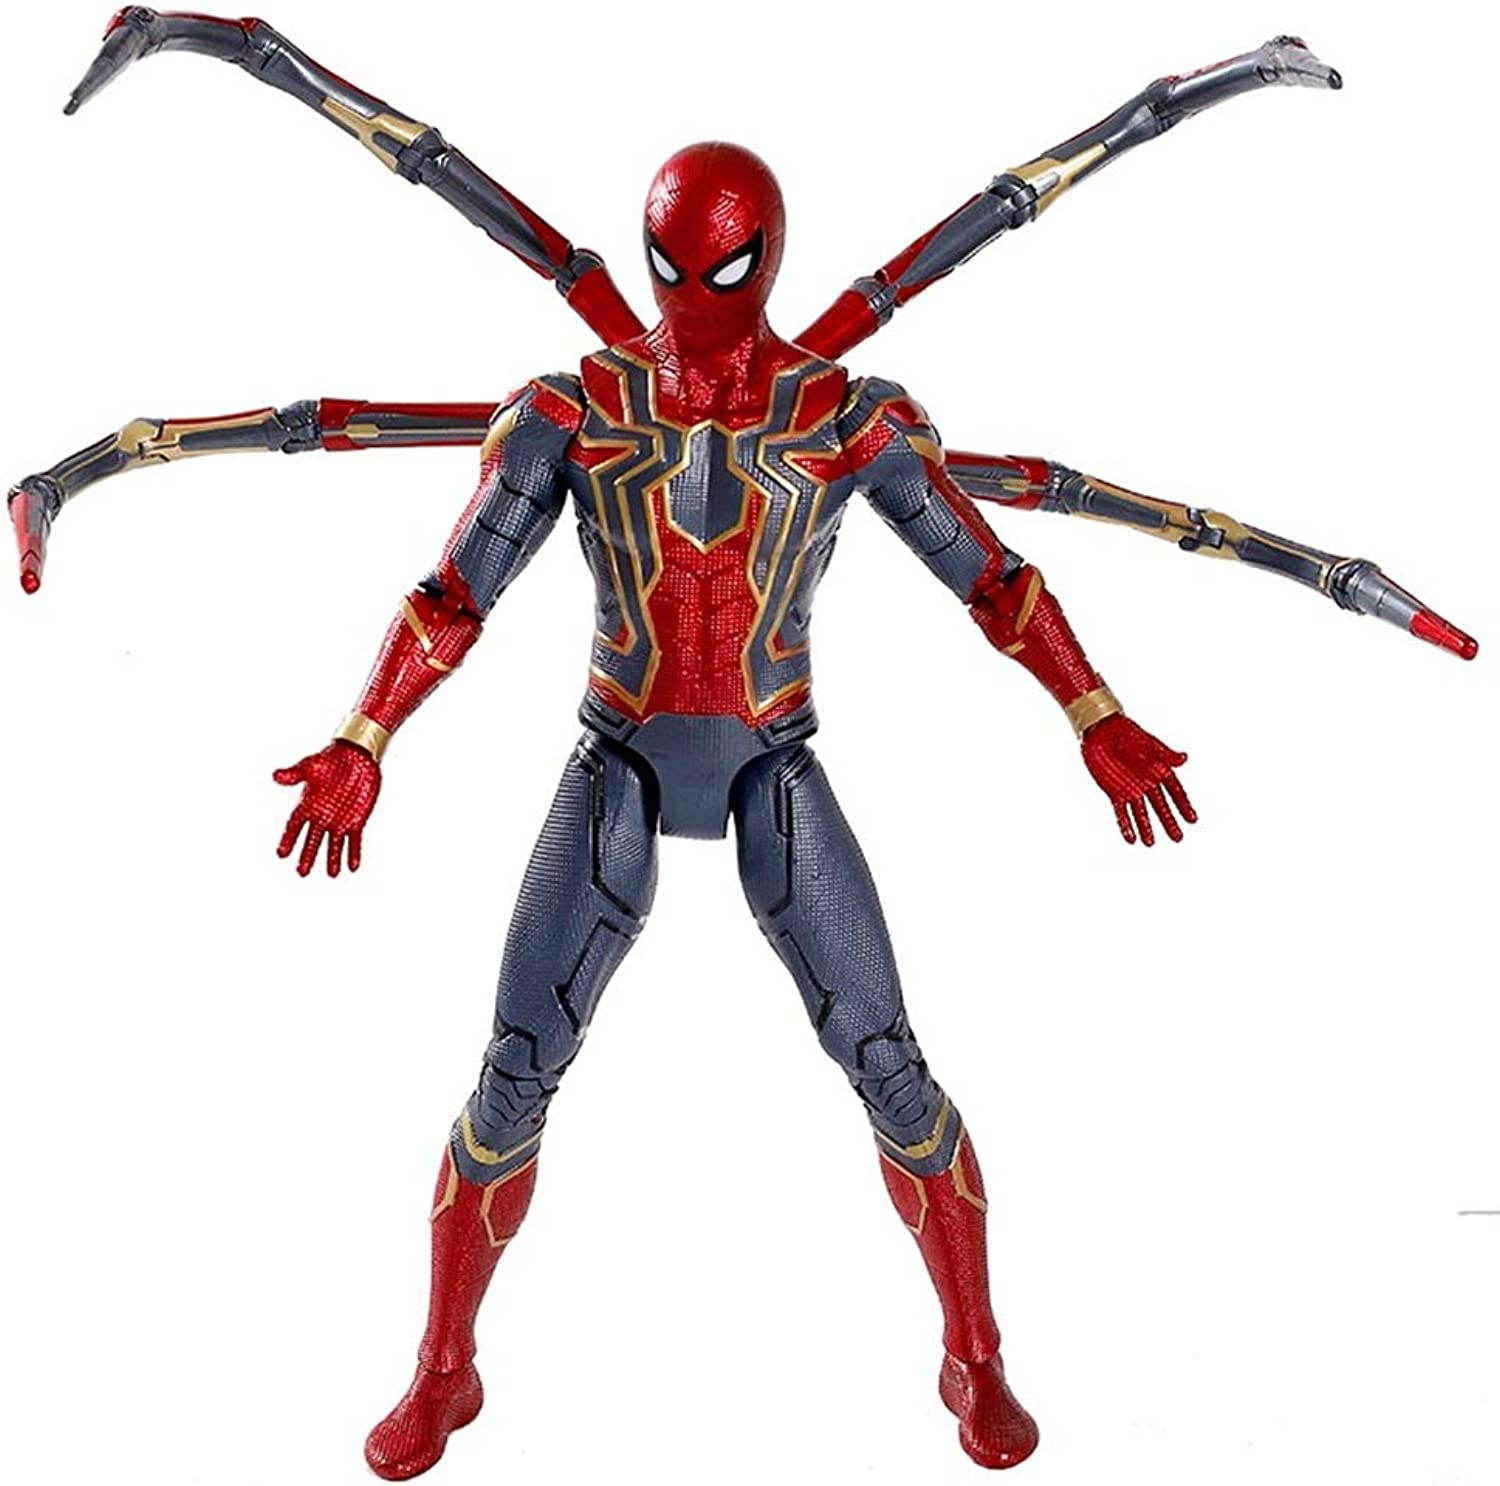 WJBFQY FH Marvel Avengers 3 Spiderman Action Figure 7 Inch Height 18cm,Boy Spiderman Toys(Joints Can Be Active)